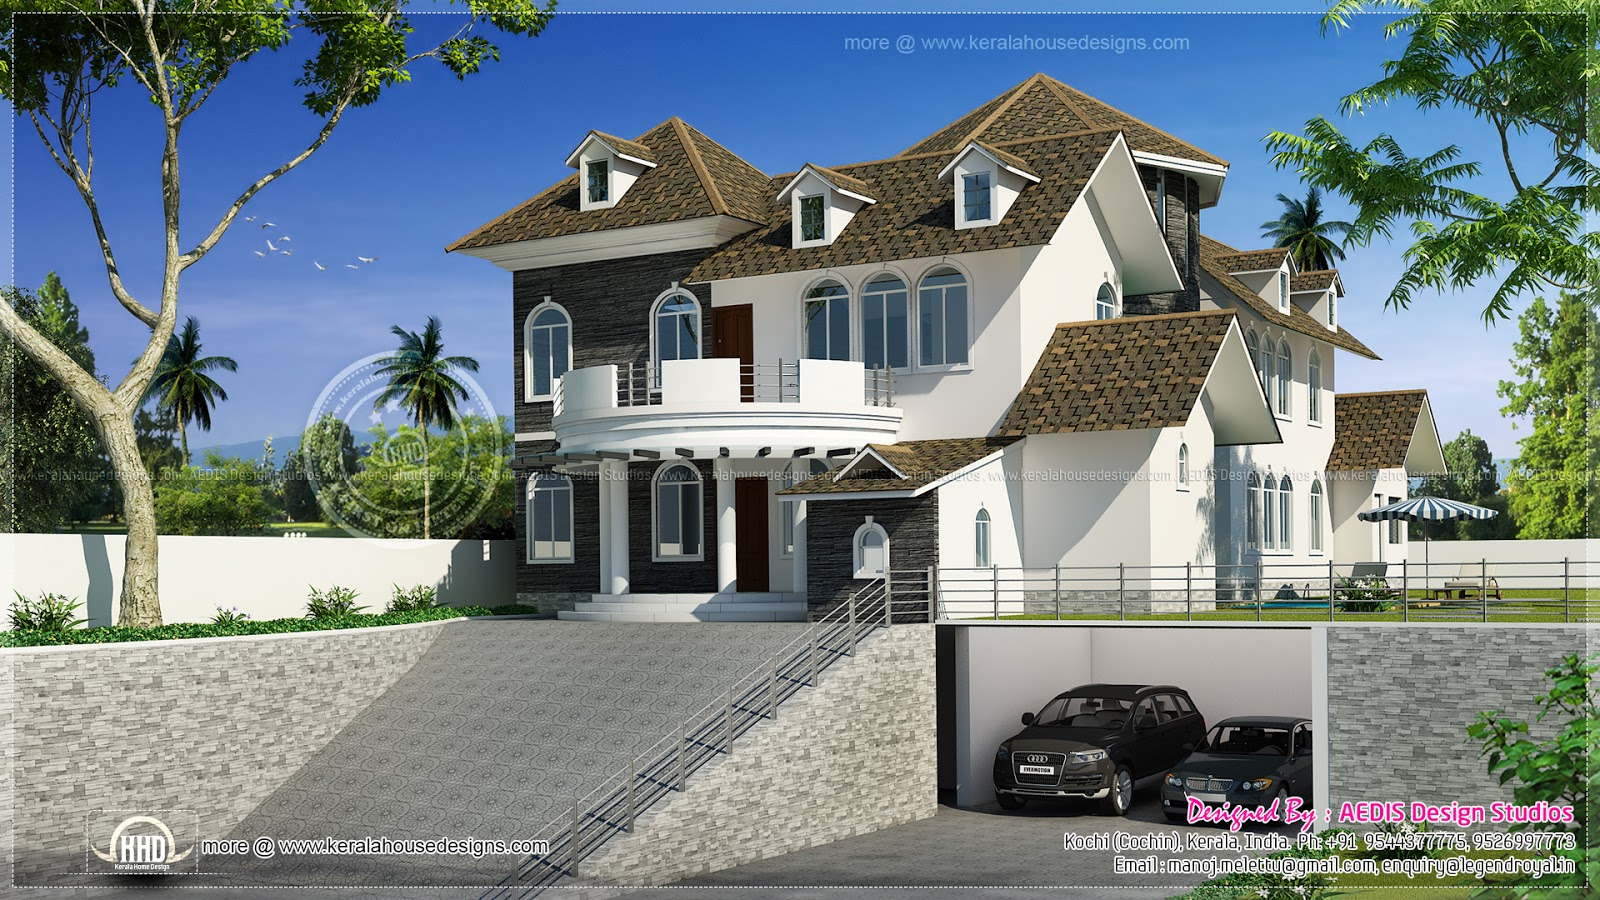 3400 square feet modern hill side home design kerala Home design latest